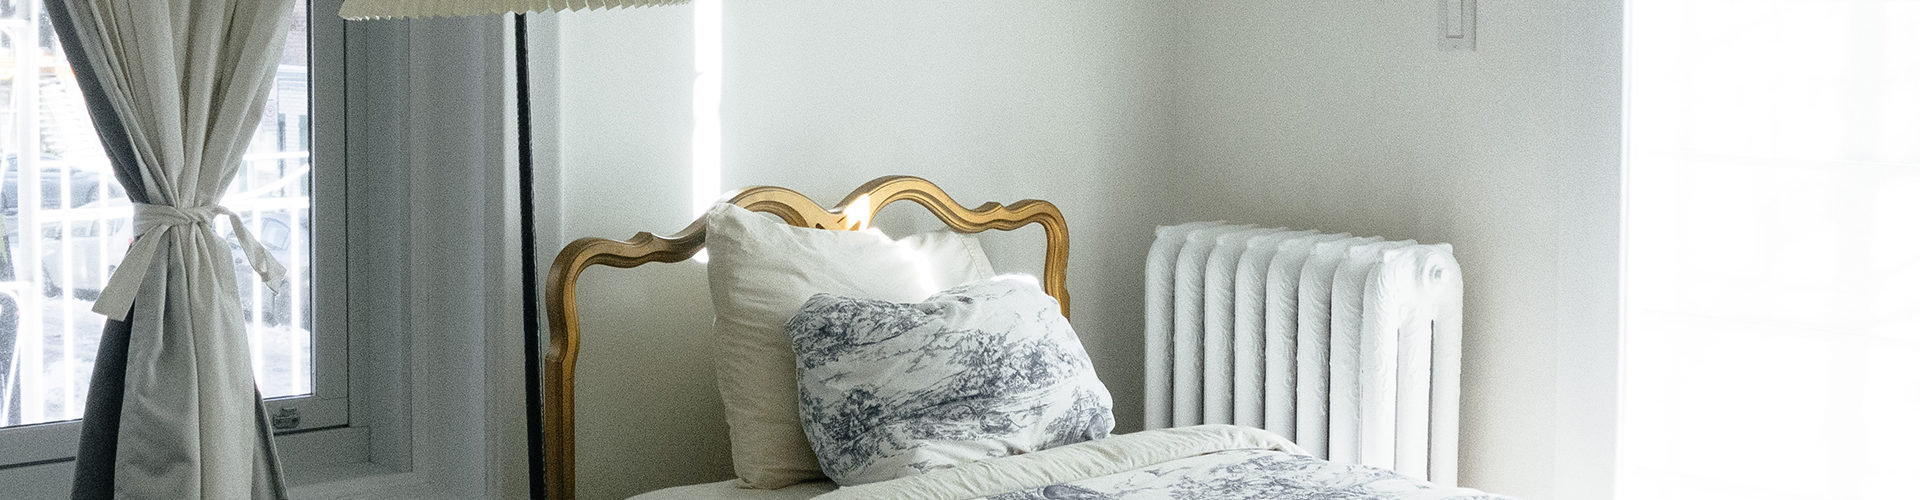 bed bedroom white bedspread blue pattern